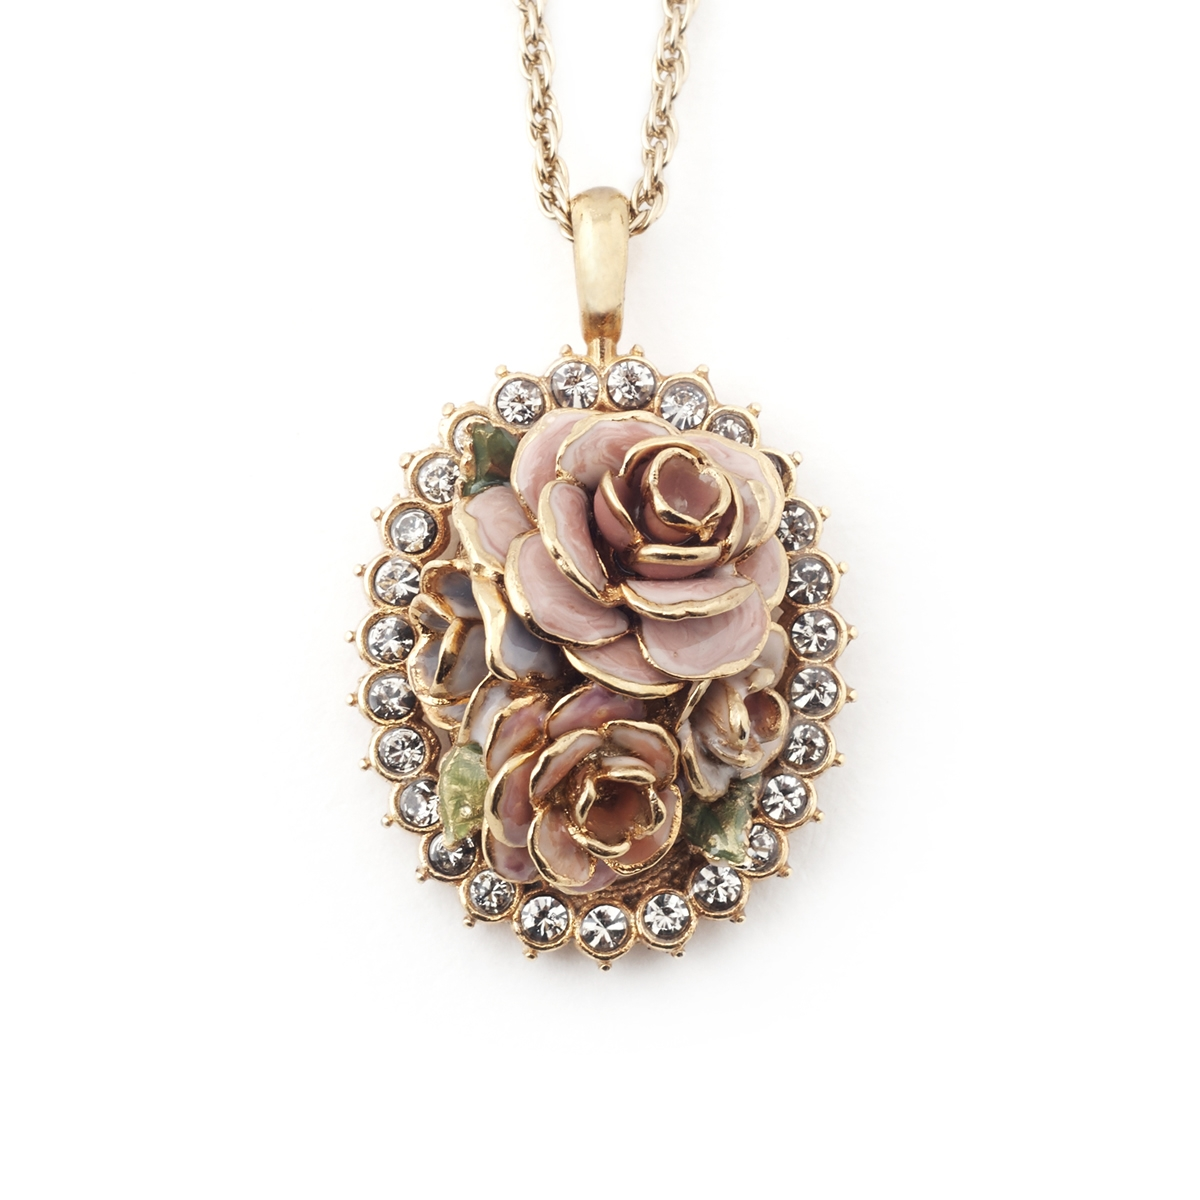 Vintage Rose Cameo Pendant